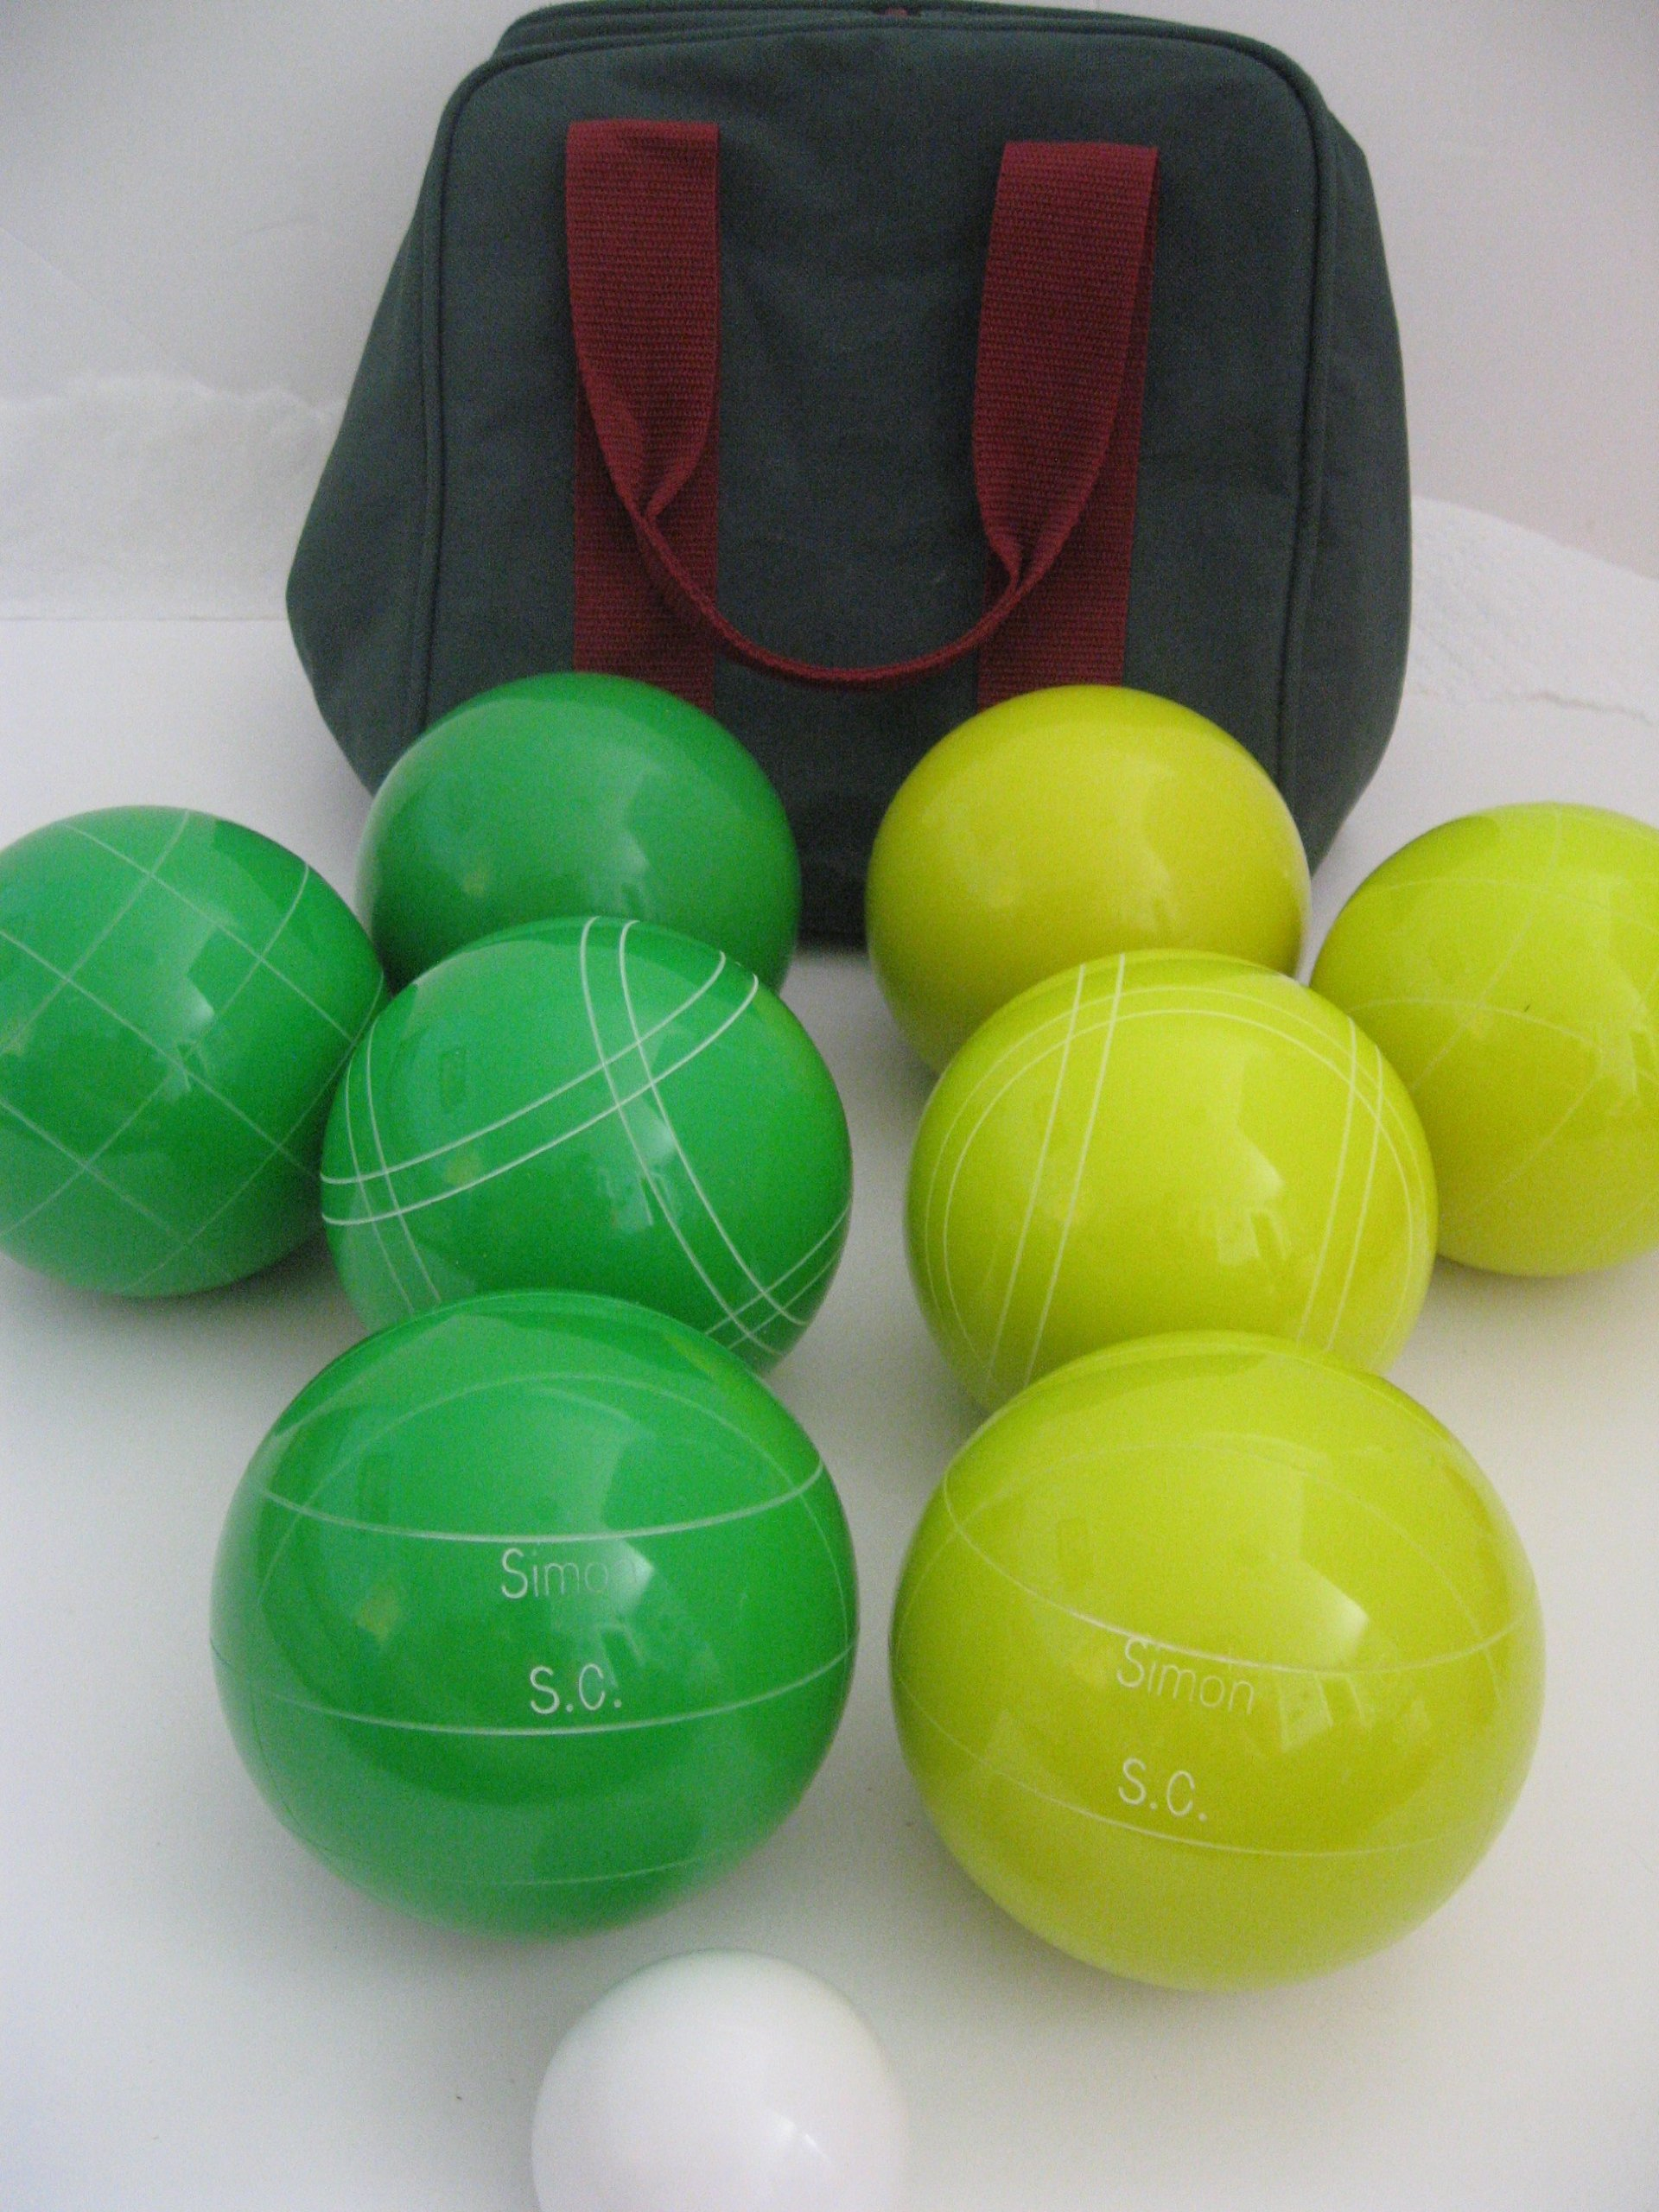 Premium Quality Engraved Bocce Package - 110mm Epco Yellow and Green Balls with Engraving